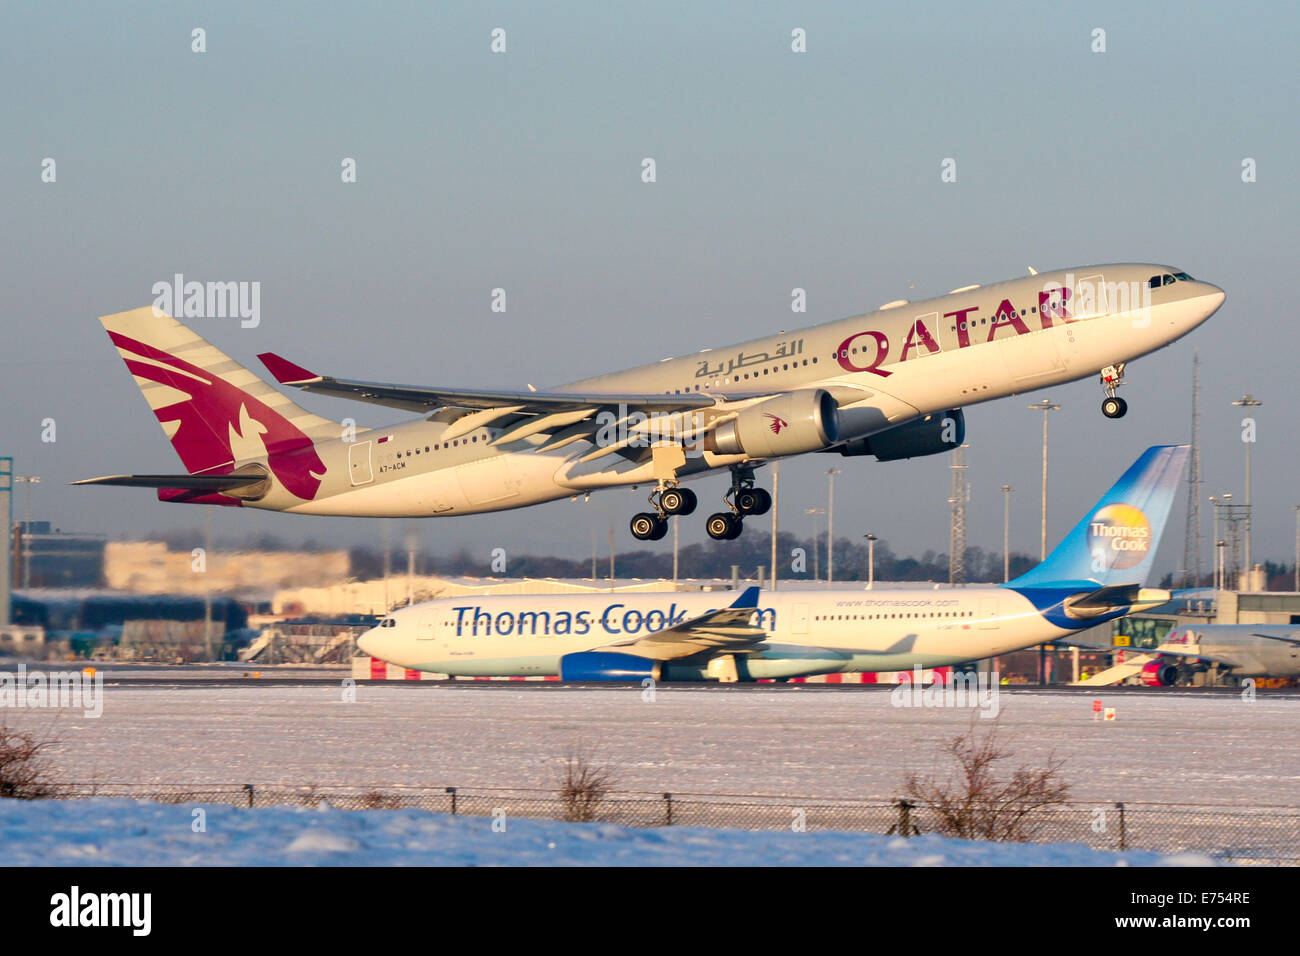 Qatar Airways Airbus A330-200 rotates from a snow covered 05L at Manchester airport. - Stock Image